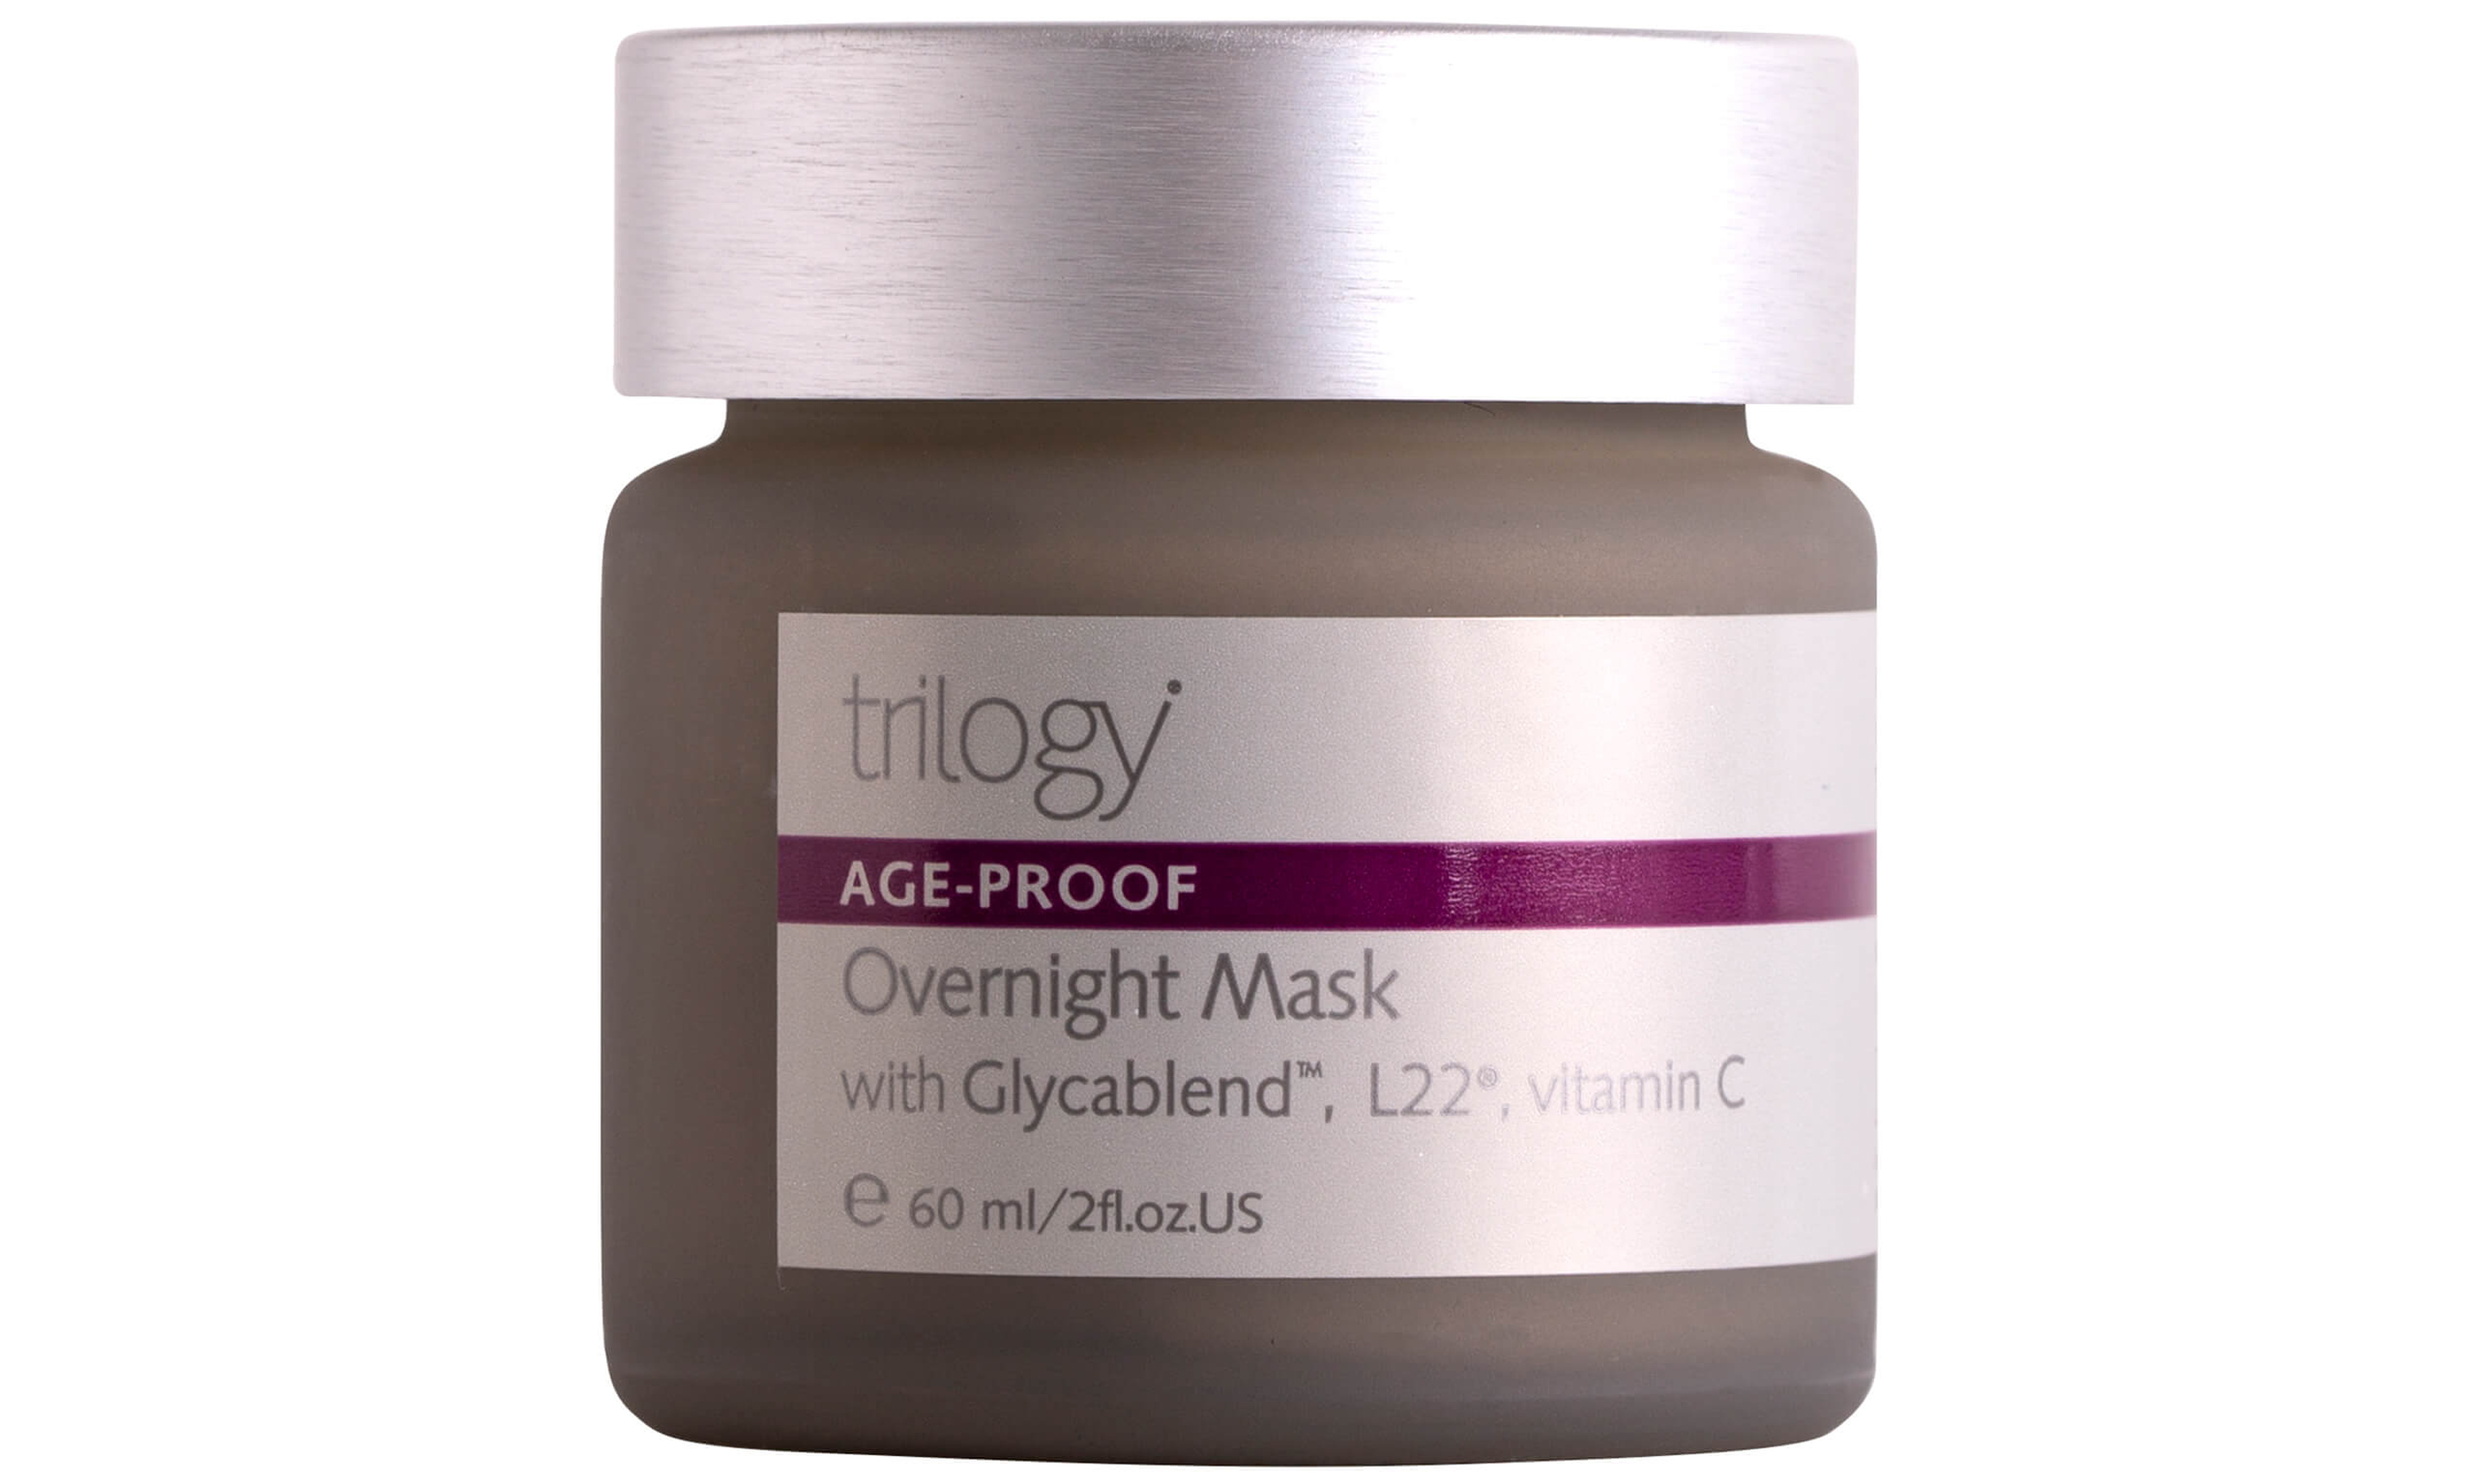 Trilogy Age-Proof Overnight Mask